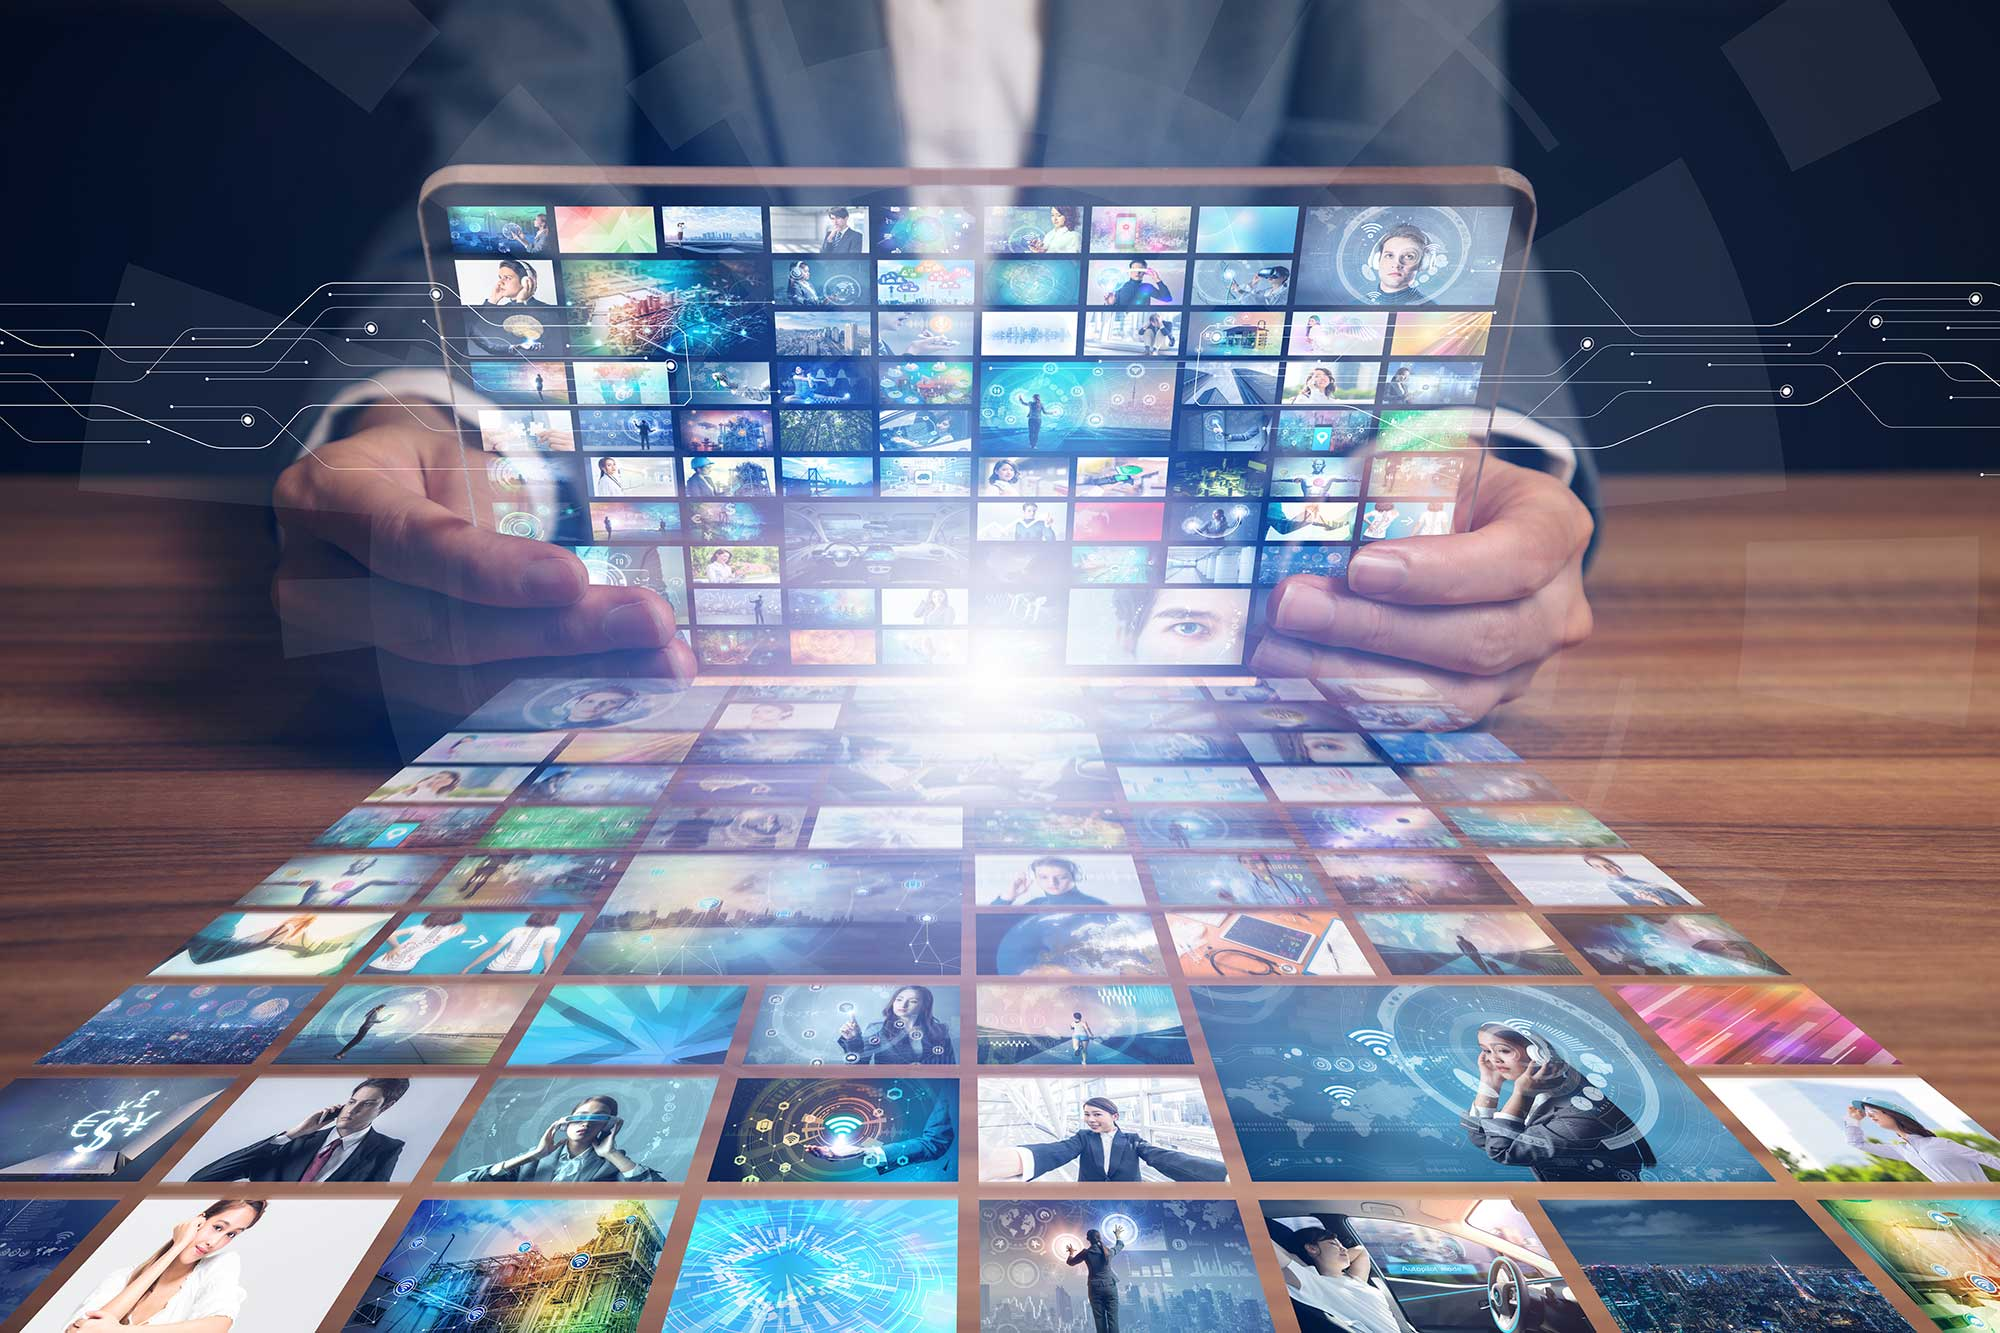 Best Business Video Hosting: 9 Reasons You Might Have The Wrong Platform